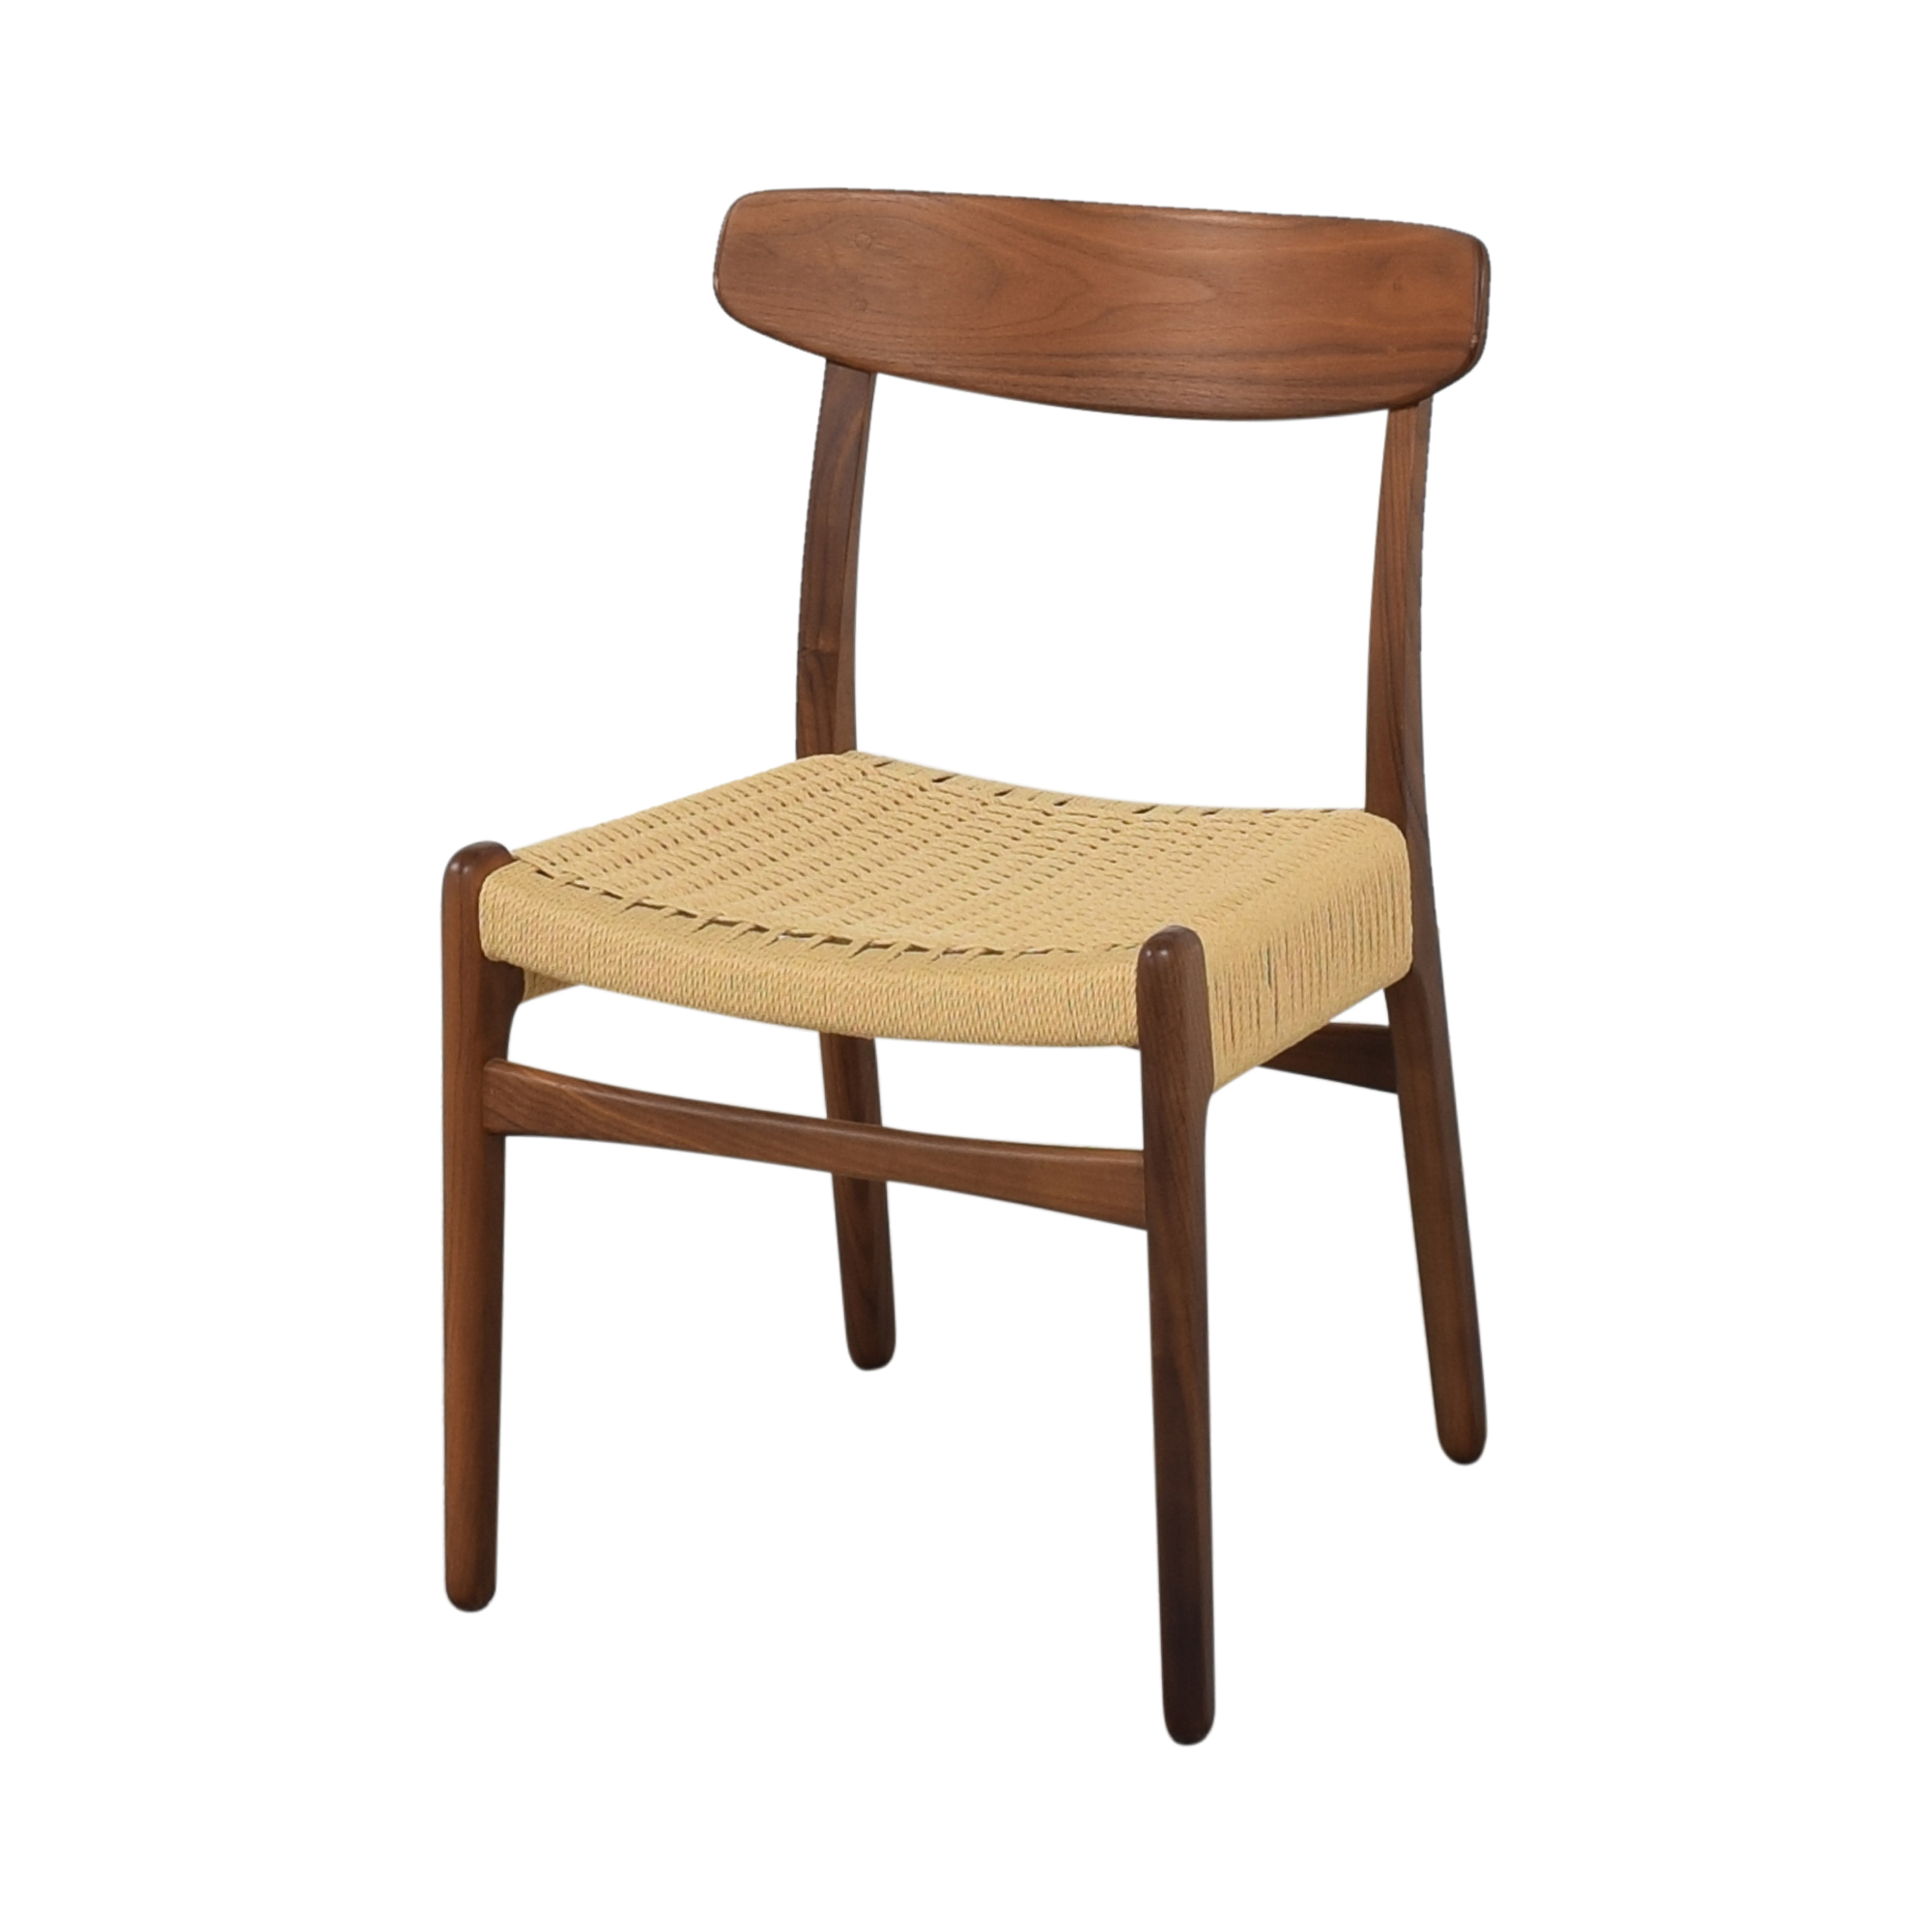 Sit Down New York Hans Wegner-Style Mid Century Dining Chairs nyc